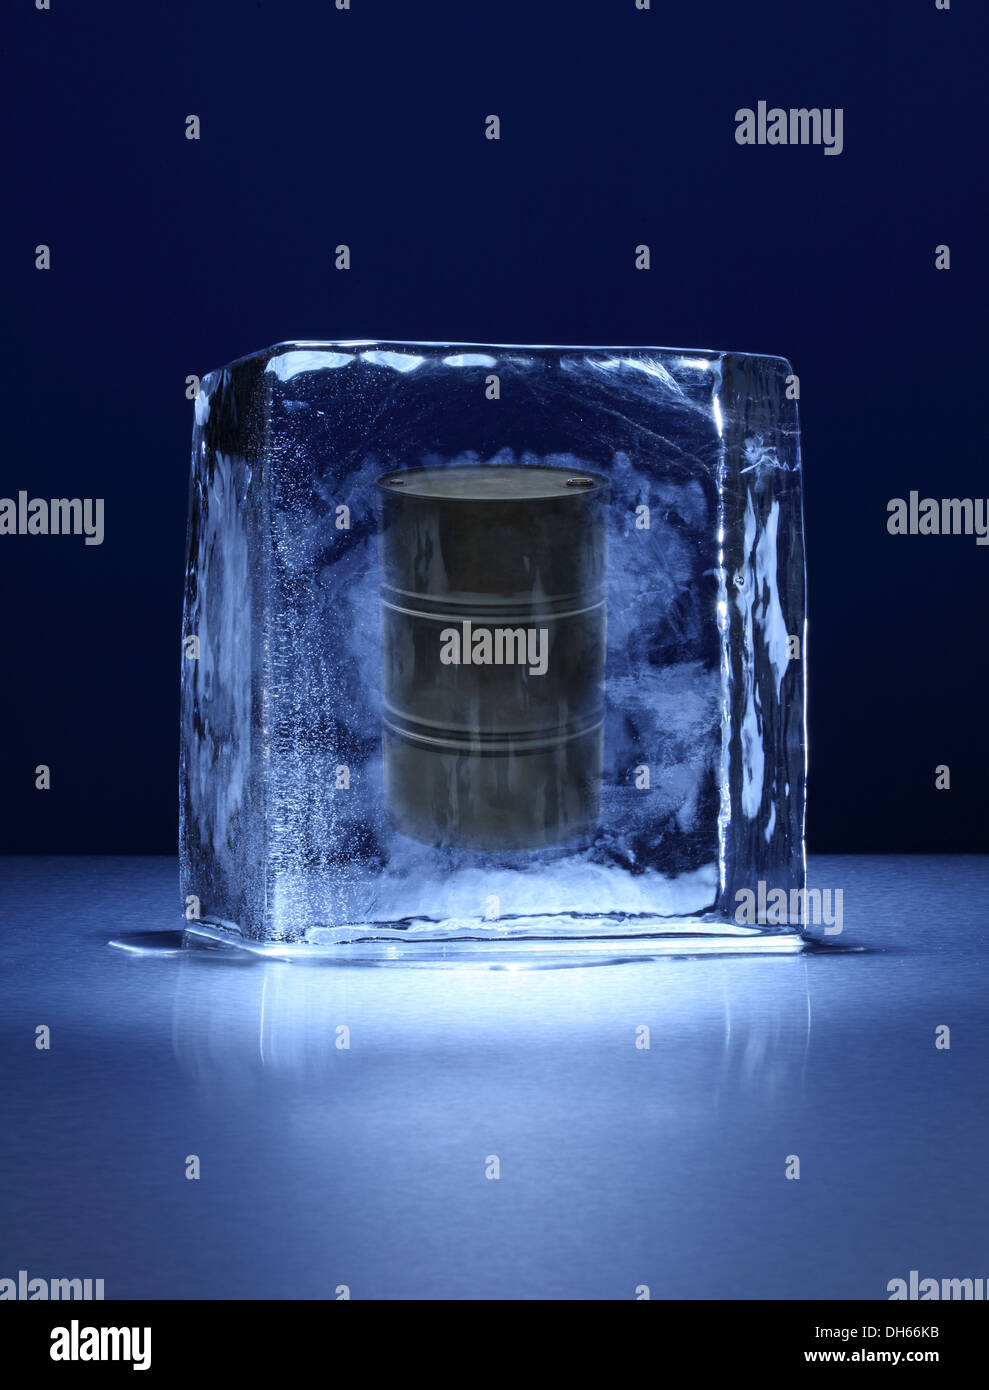 A black oil barrel frozen in a clear block of ice - Stock Image